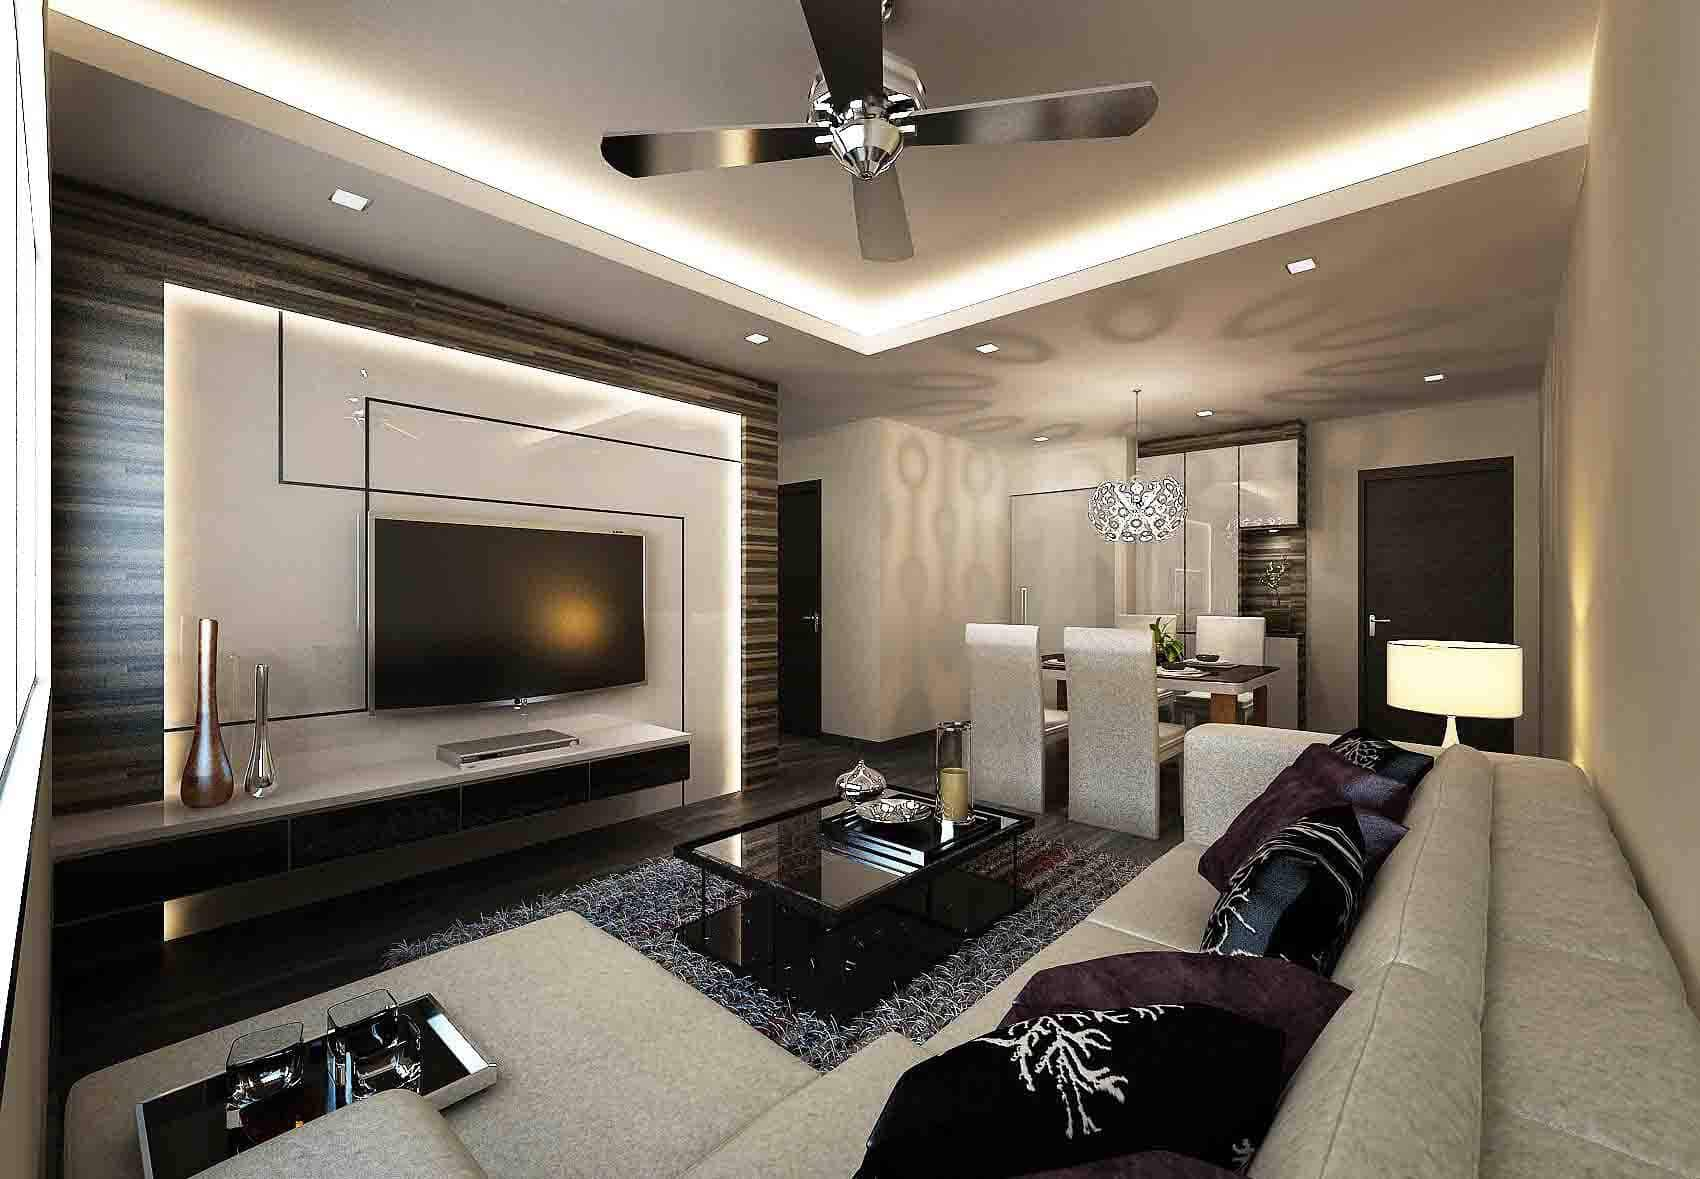 5 elements of a successful living room concept juz interior for Good living room ideas